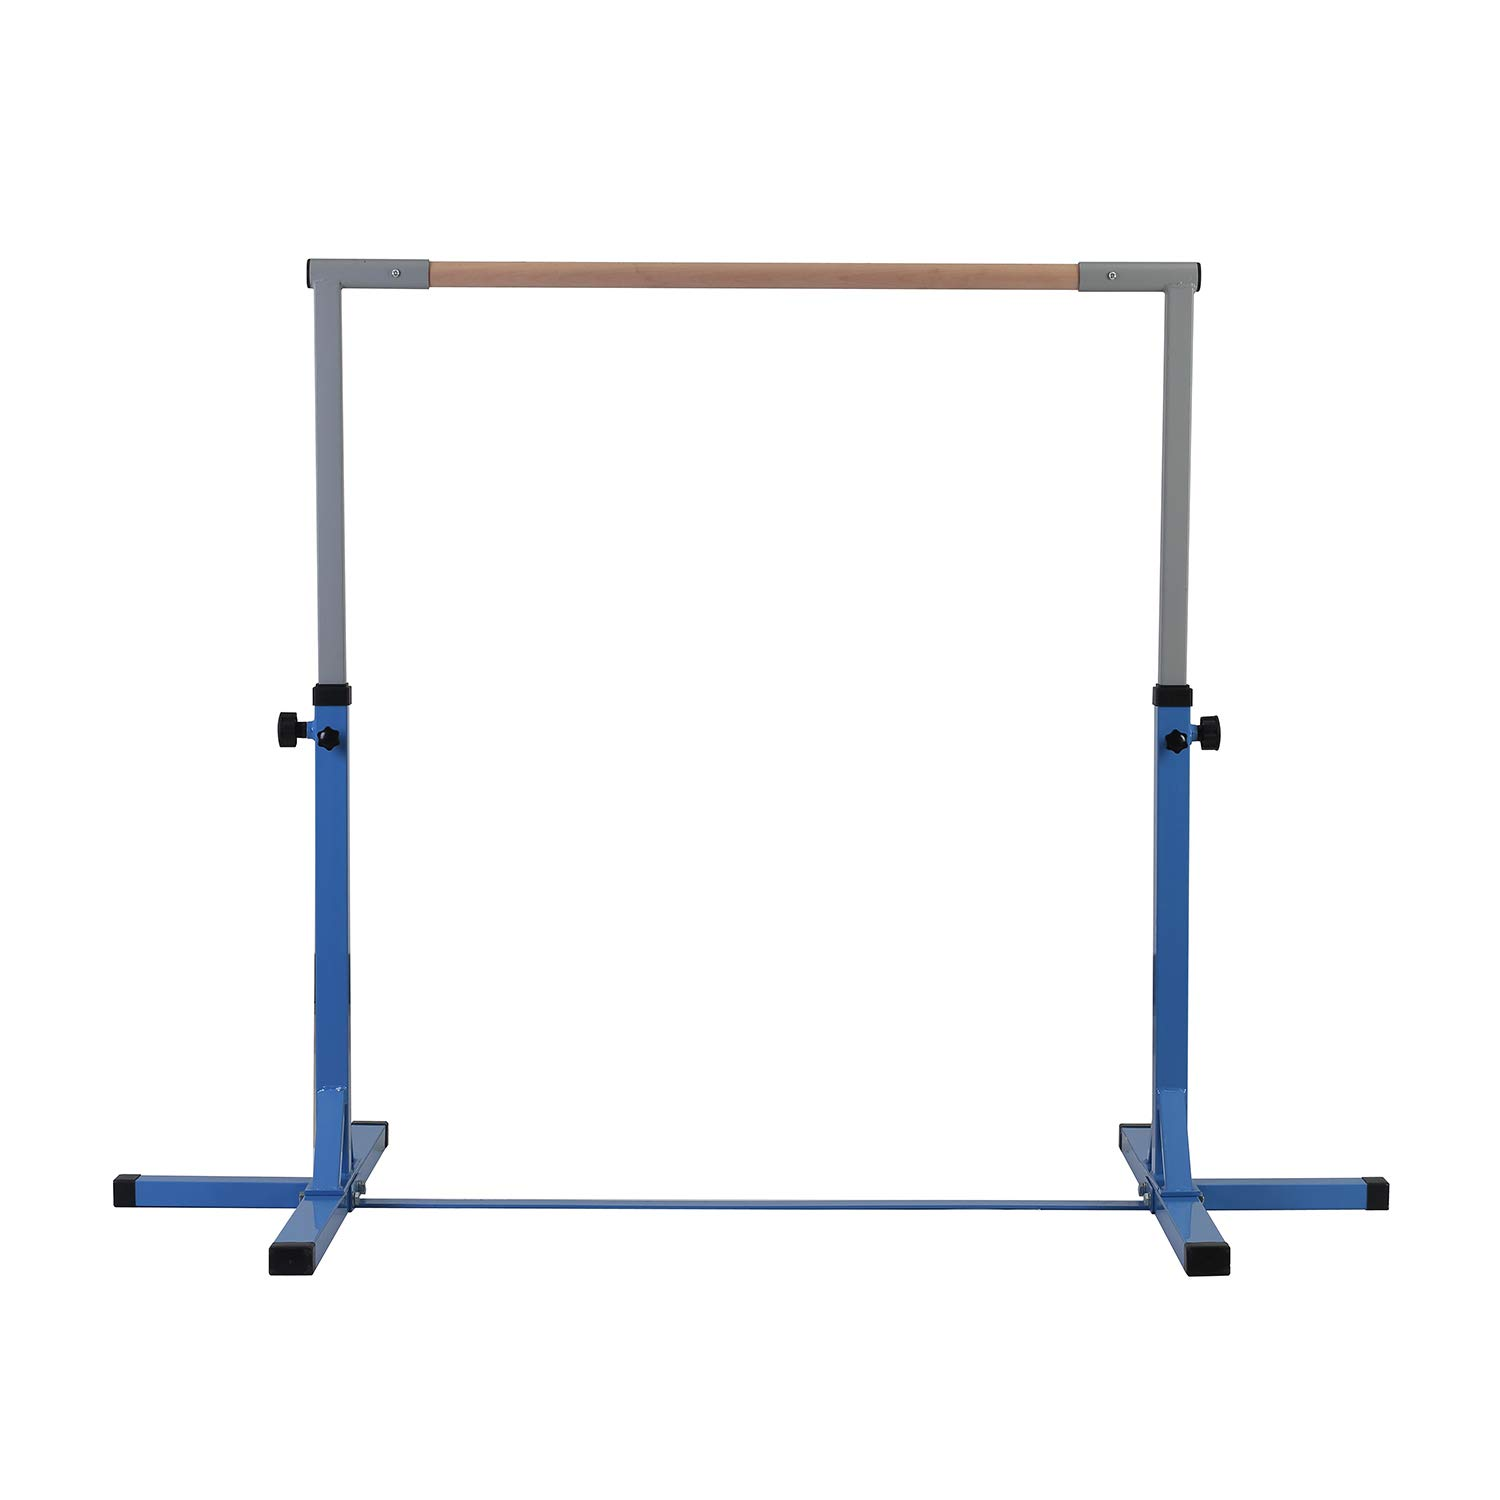 LEISURELIFE Adjustable Height Kip Bar-Fitness Gymnastics Training Horizontal Bar Blue for Boys by LEISURELIFE (Image #1)